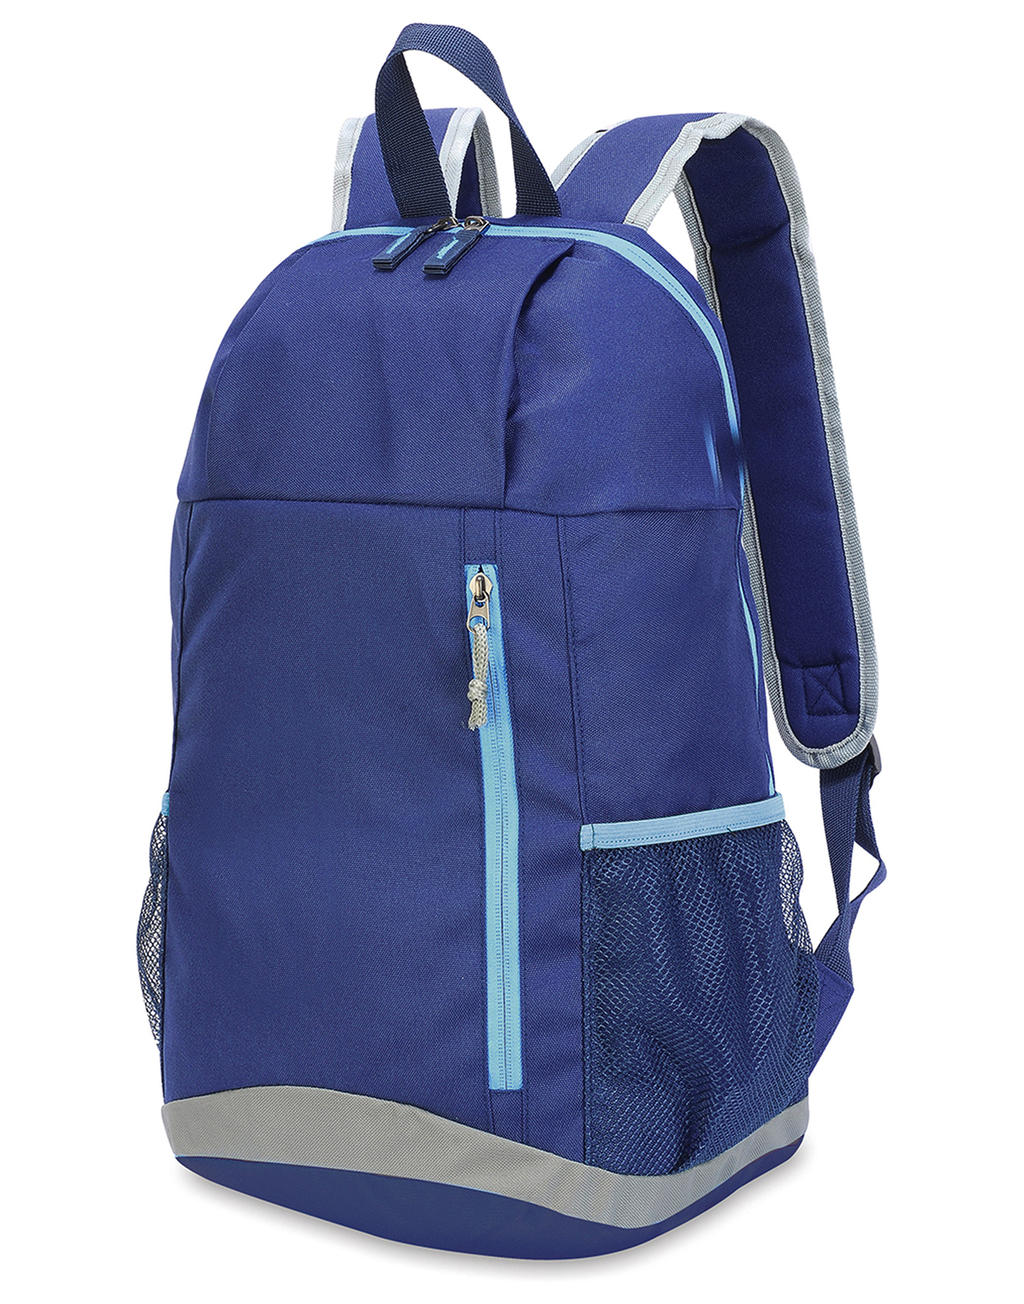 Basic Backpack French navy-Sky blue-Light